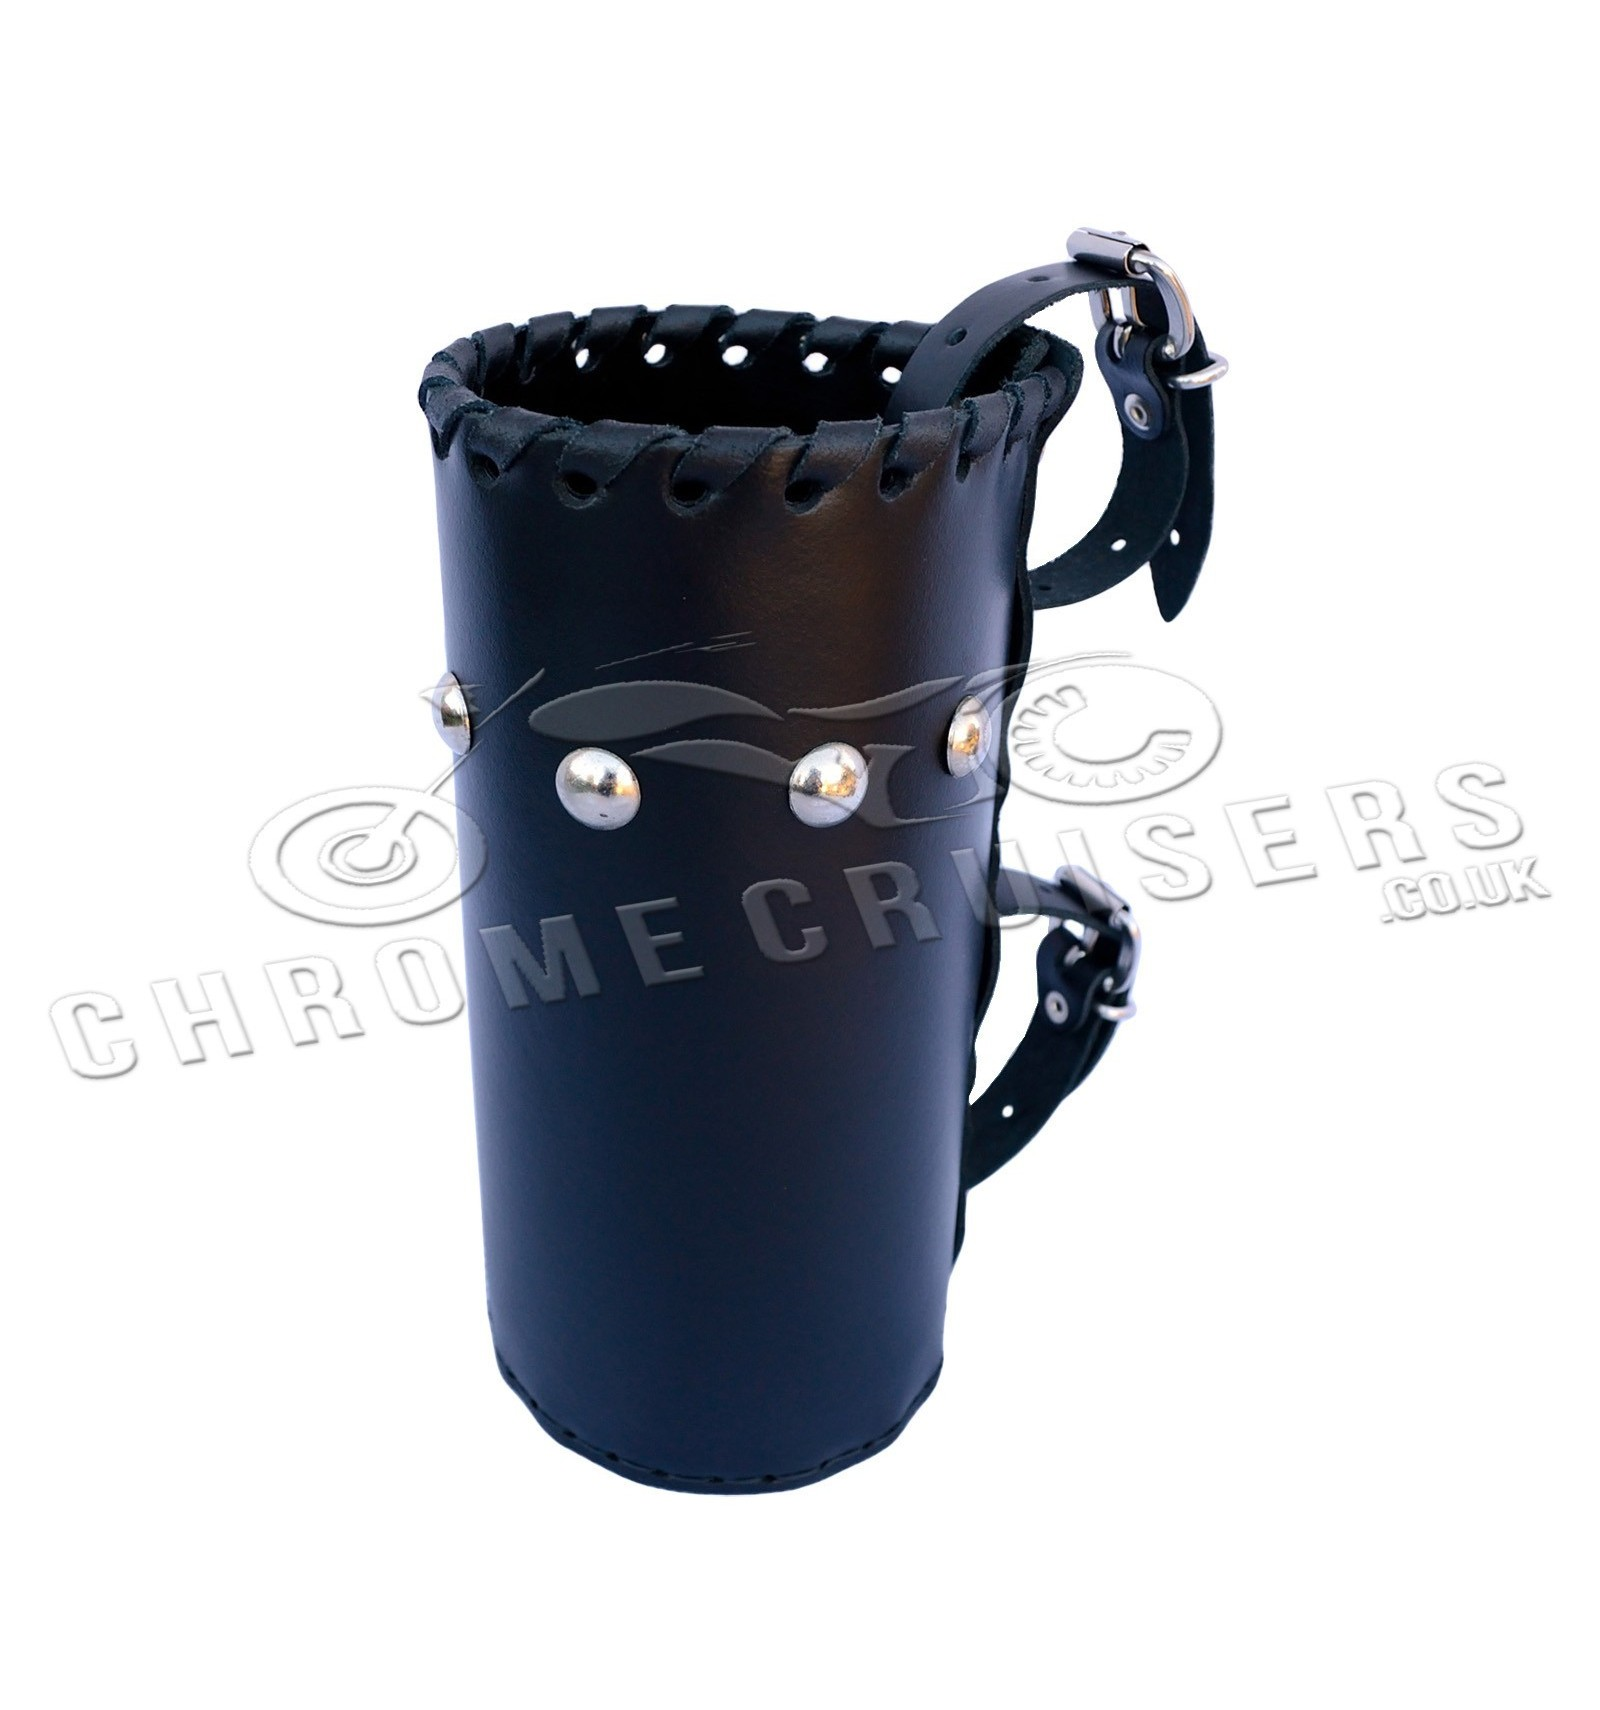 Harley Davidson Windshields >> Motorcycle leather drink holder - large (N4B) - Chrome Cruisers